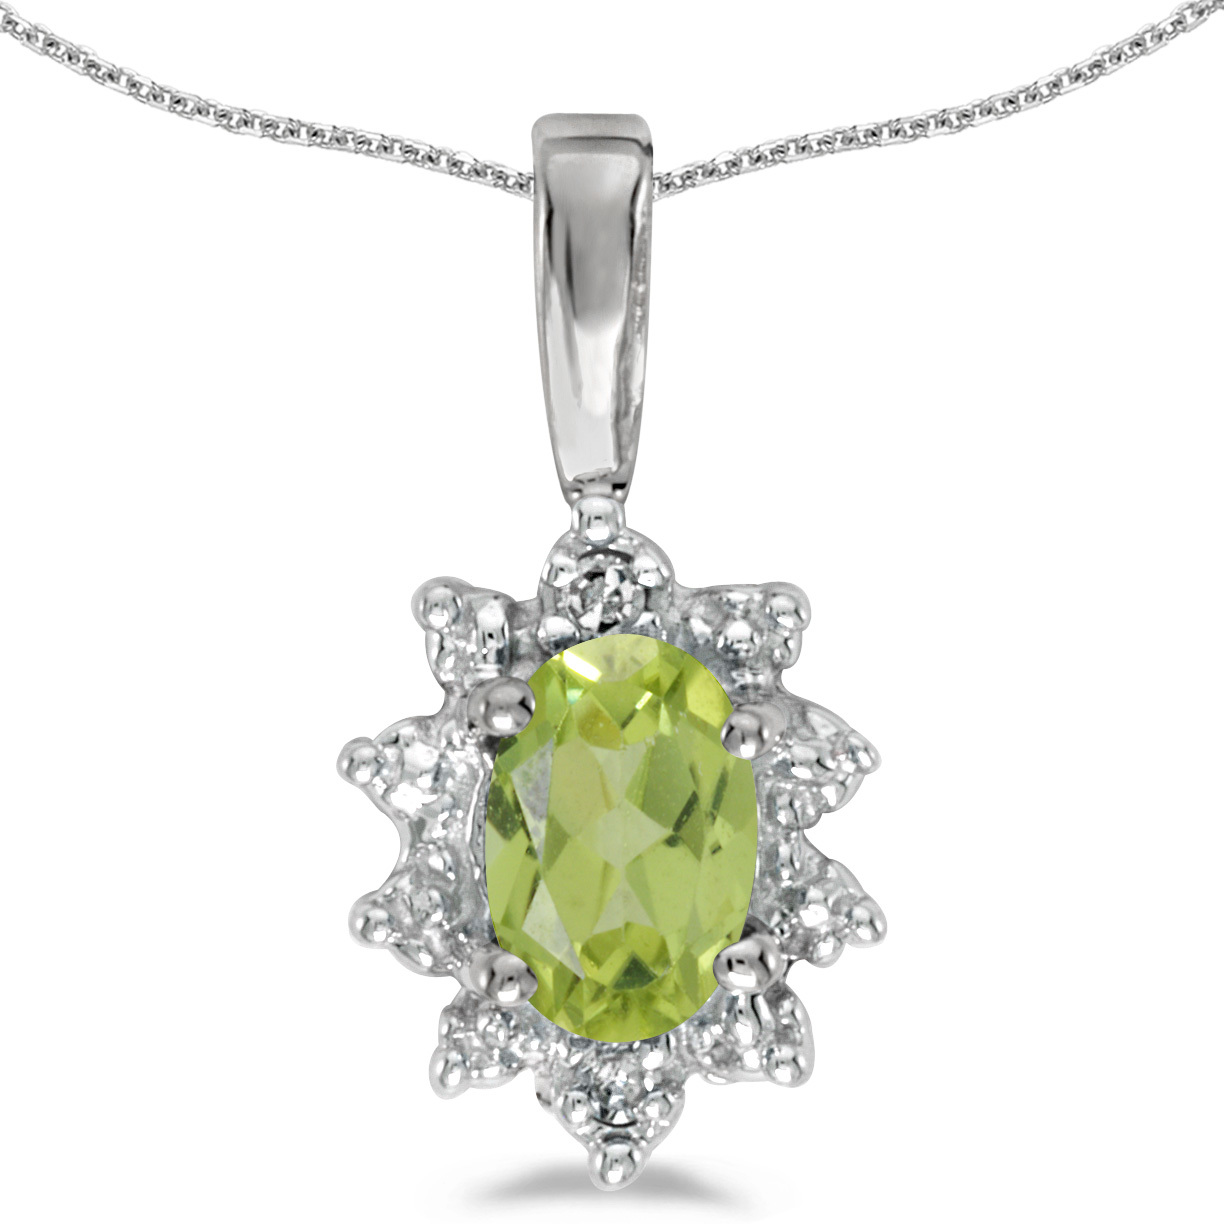 10k White Gold Oval Peridot And Diamond Pendant (Chain NOT included)